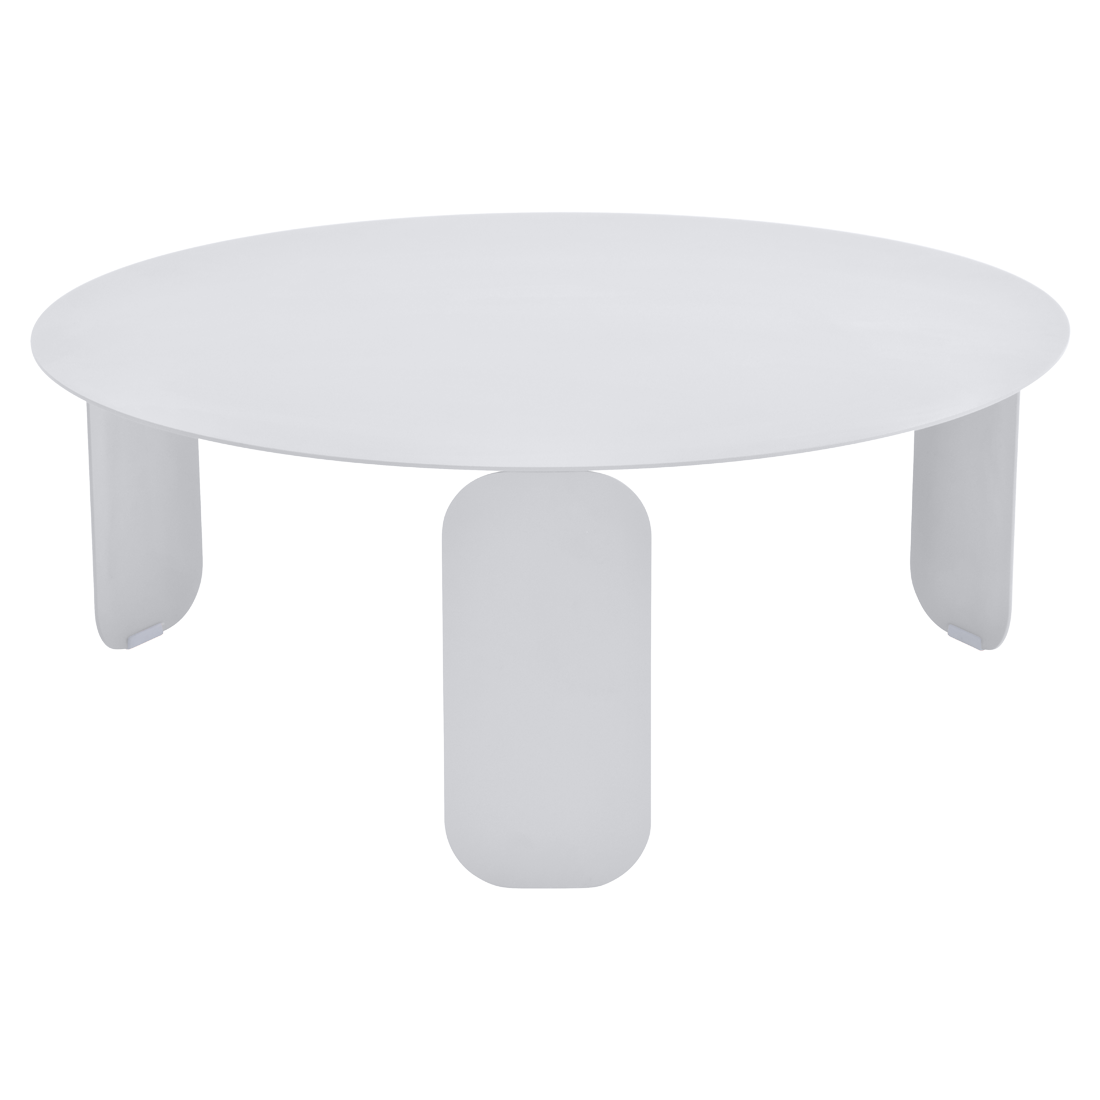 table basse metal, table basse design, table basse fermob, table basse blanche